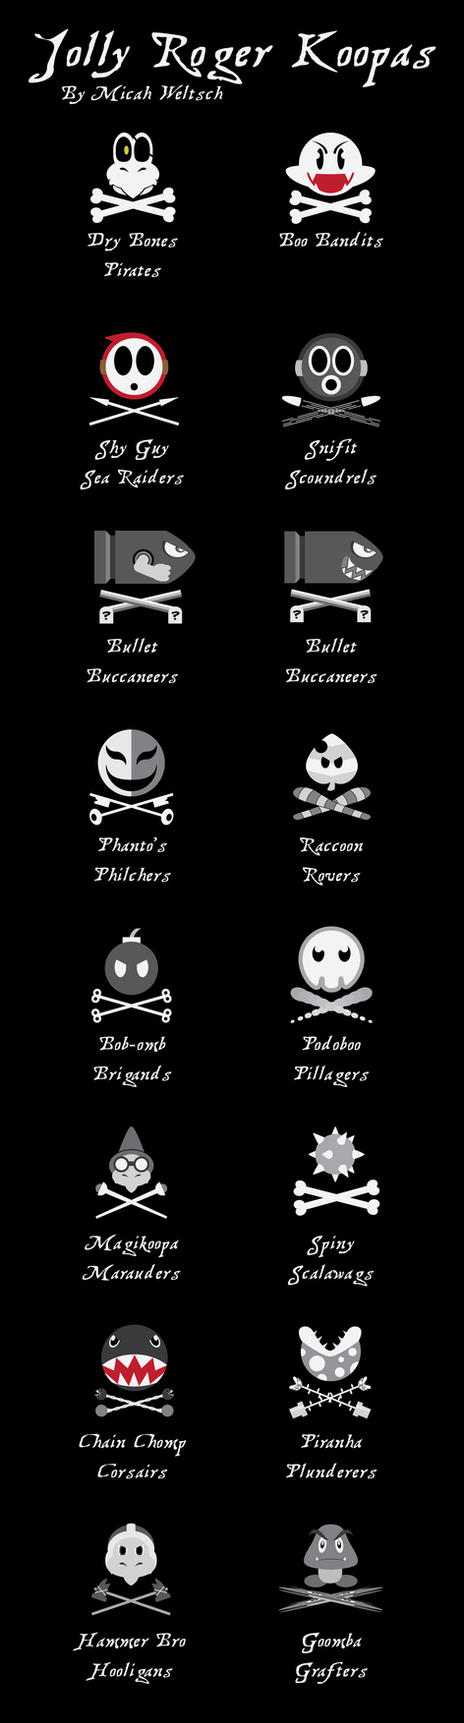 Jolly Roger Koopas by micahdraws